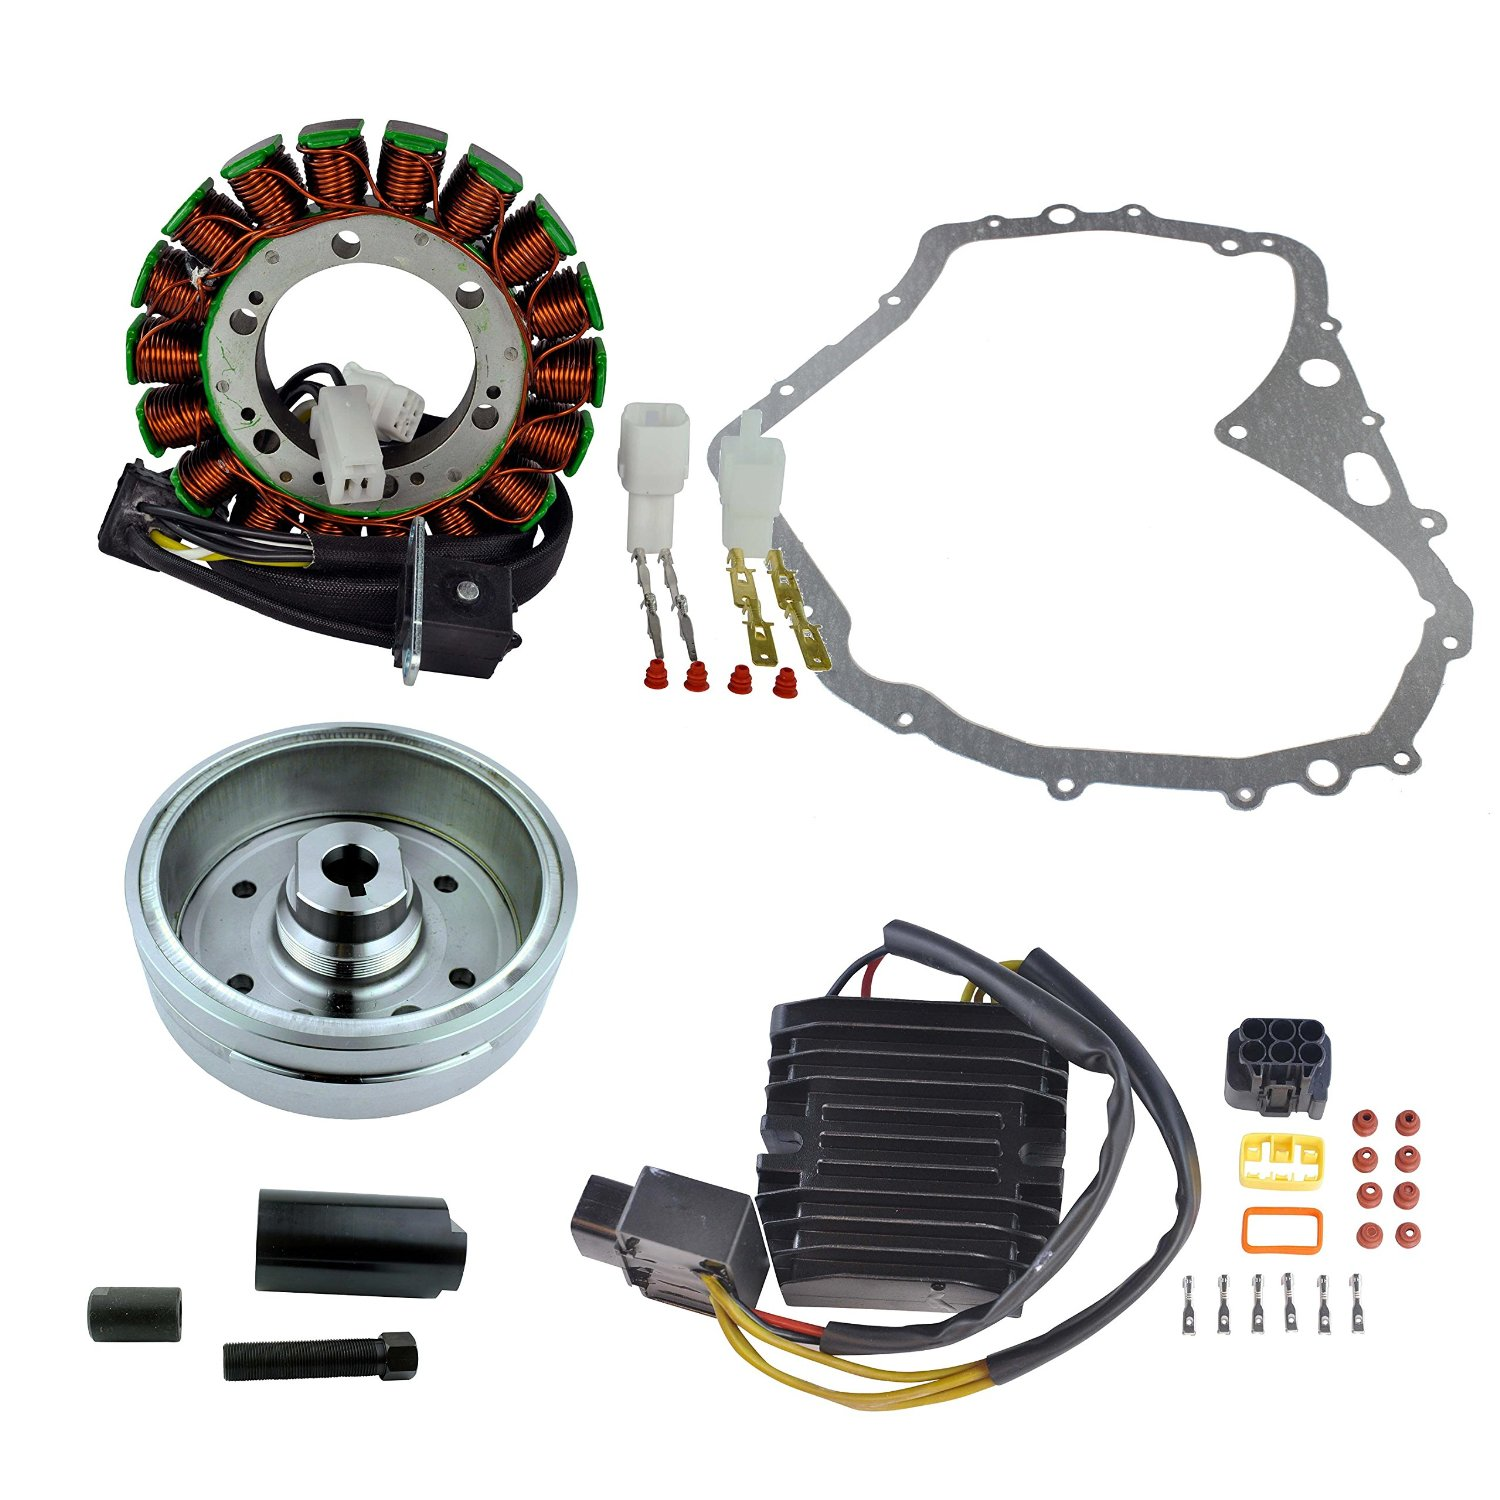 Kit Improved Flywheel + Puller + Stator + Mosfet Regulator + Gasket For Suzuki LTF 400 Eiger 4x4 Manual 2002 2003 2004 2005 2006 2007